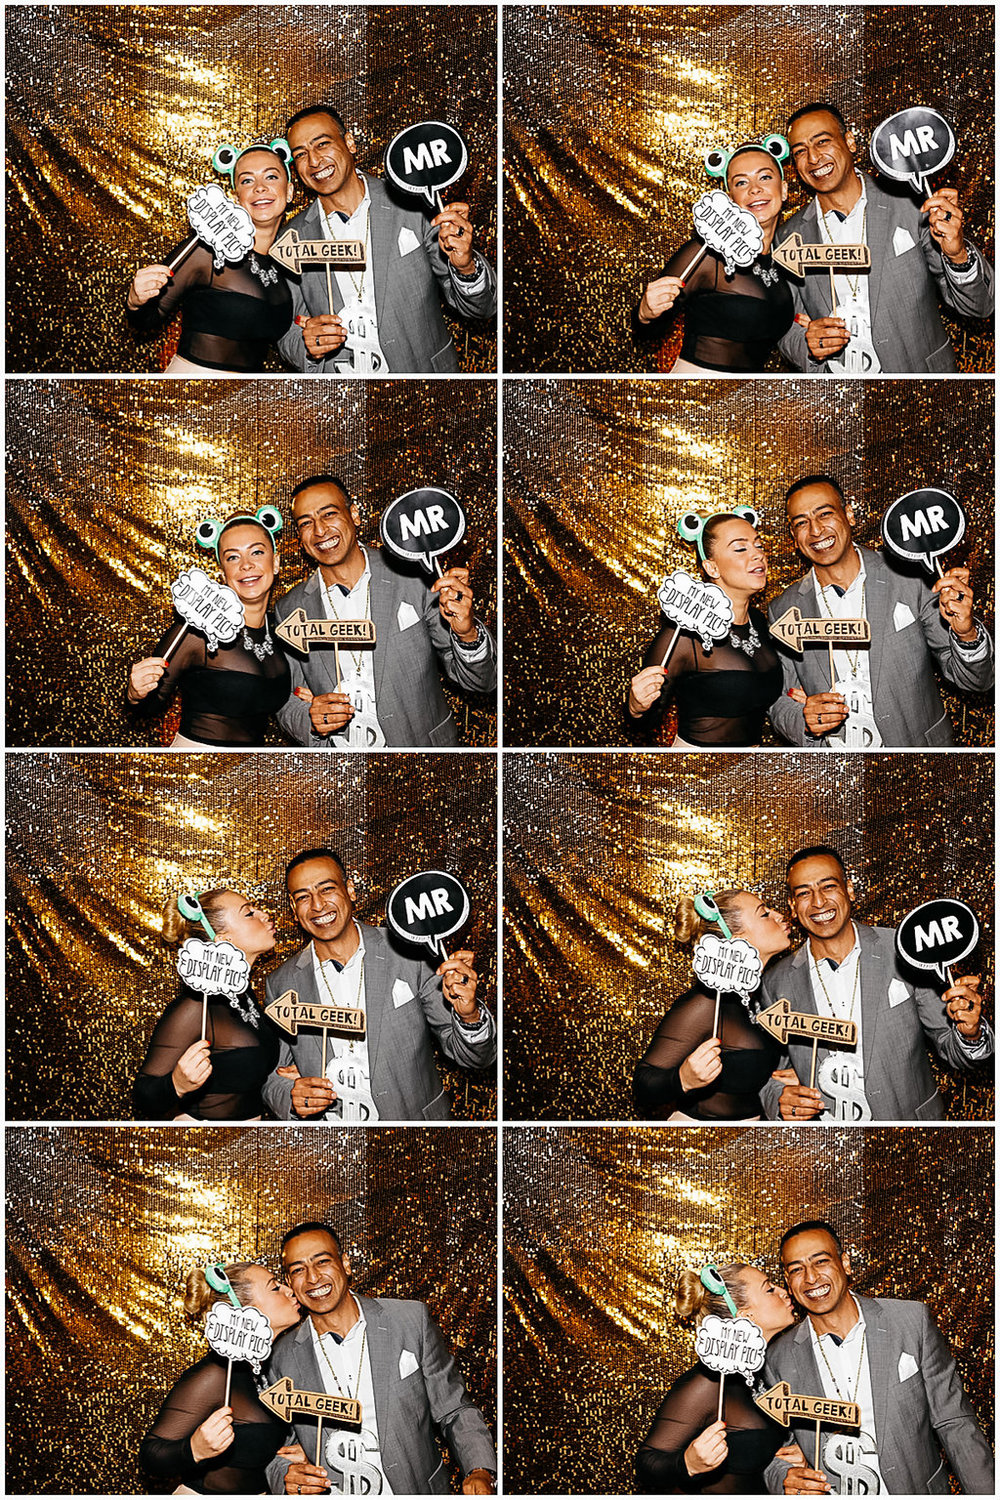 photobooth-014.jpg